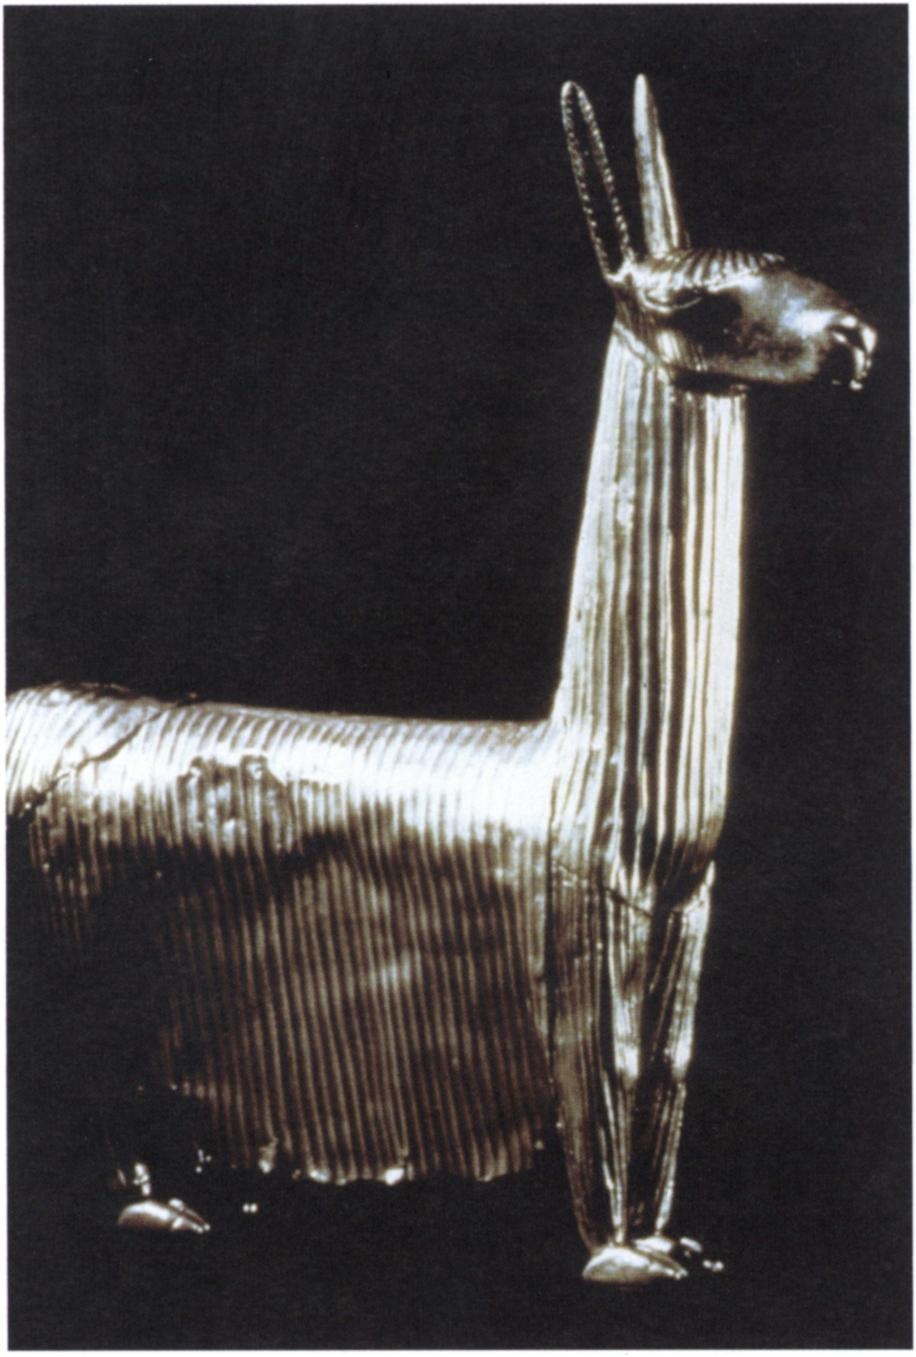 Inca, llama figurine, c. 1400-1530, crimped silver sheet metal, 9% x 8% in. (23.8 x 20.